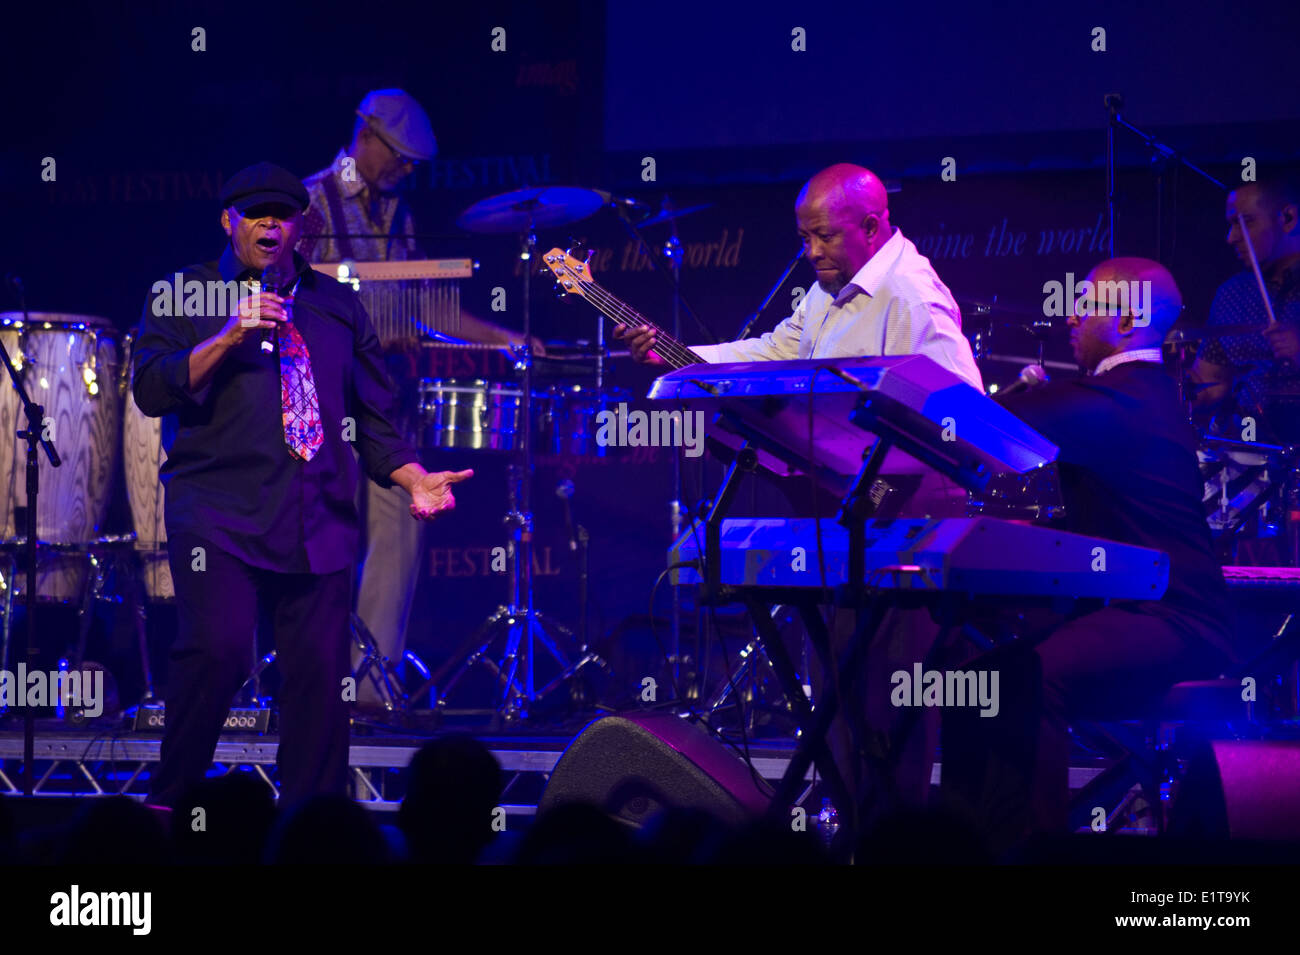 Hugh Masekela, South African jazz legend playing with his band at Hay Festival 2014 ©Jeff Morgan - Stock Image